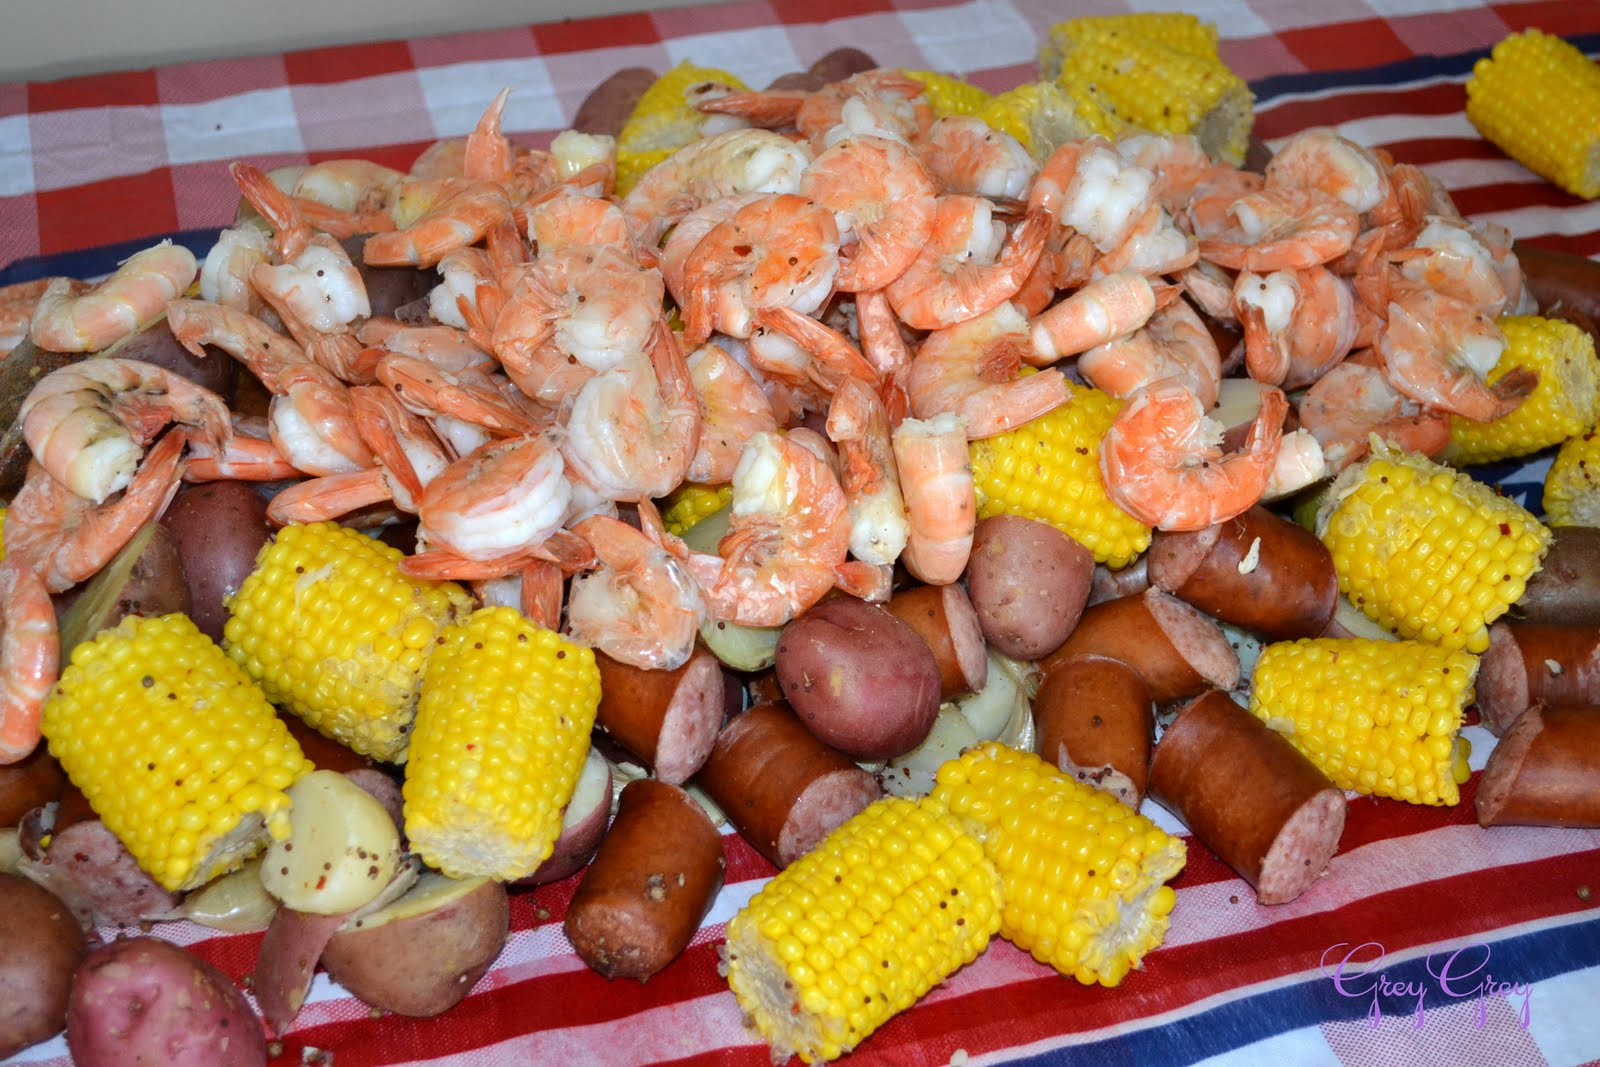 GreyGrey Designs: {My Parties} Memorial Day Shrimp Boil for Friends